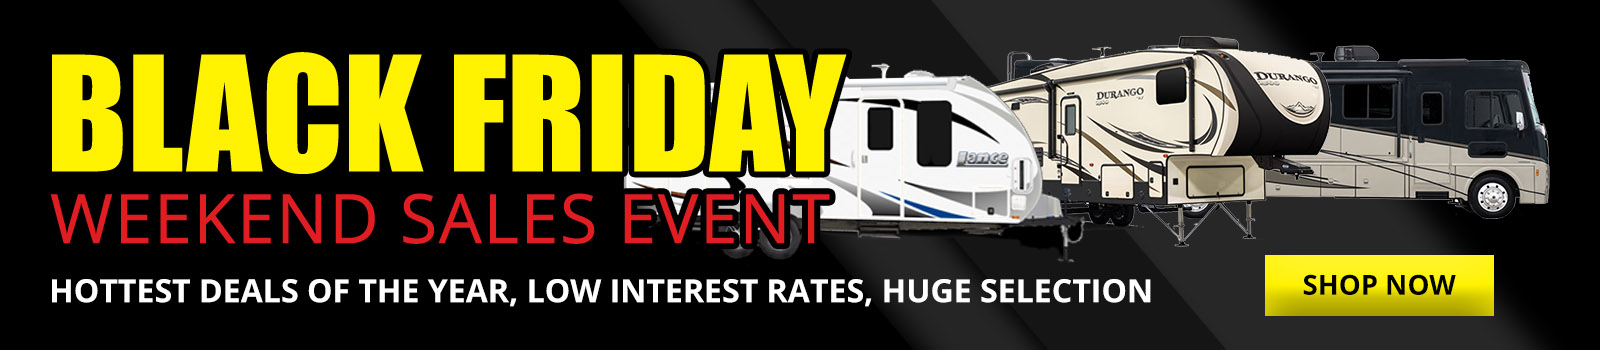 Black Friday Weekend Sales Event